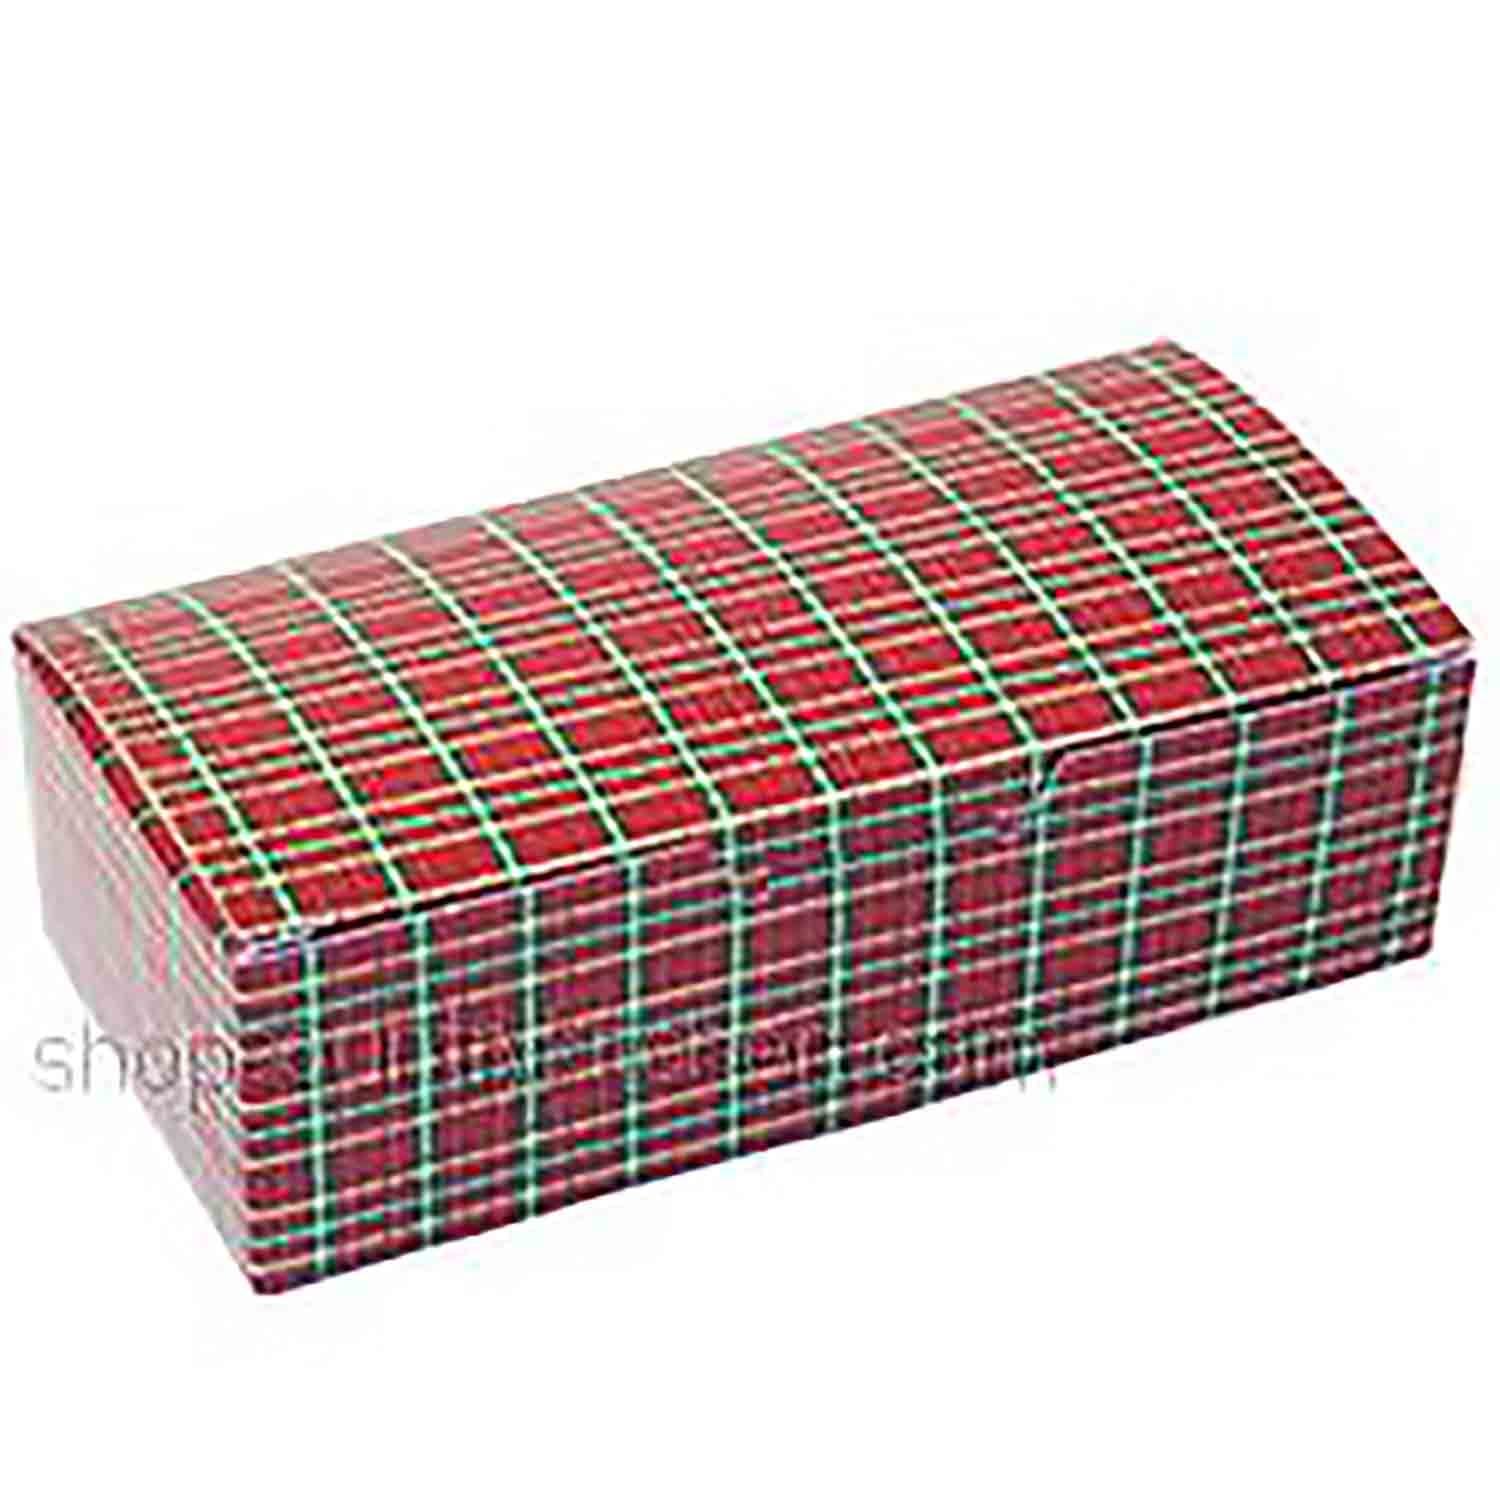 1/2 lb. Plaid Candy Box